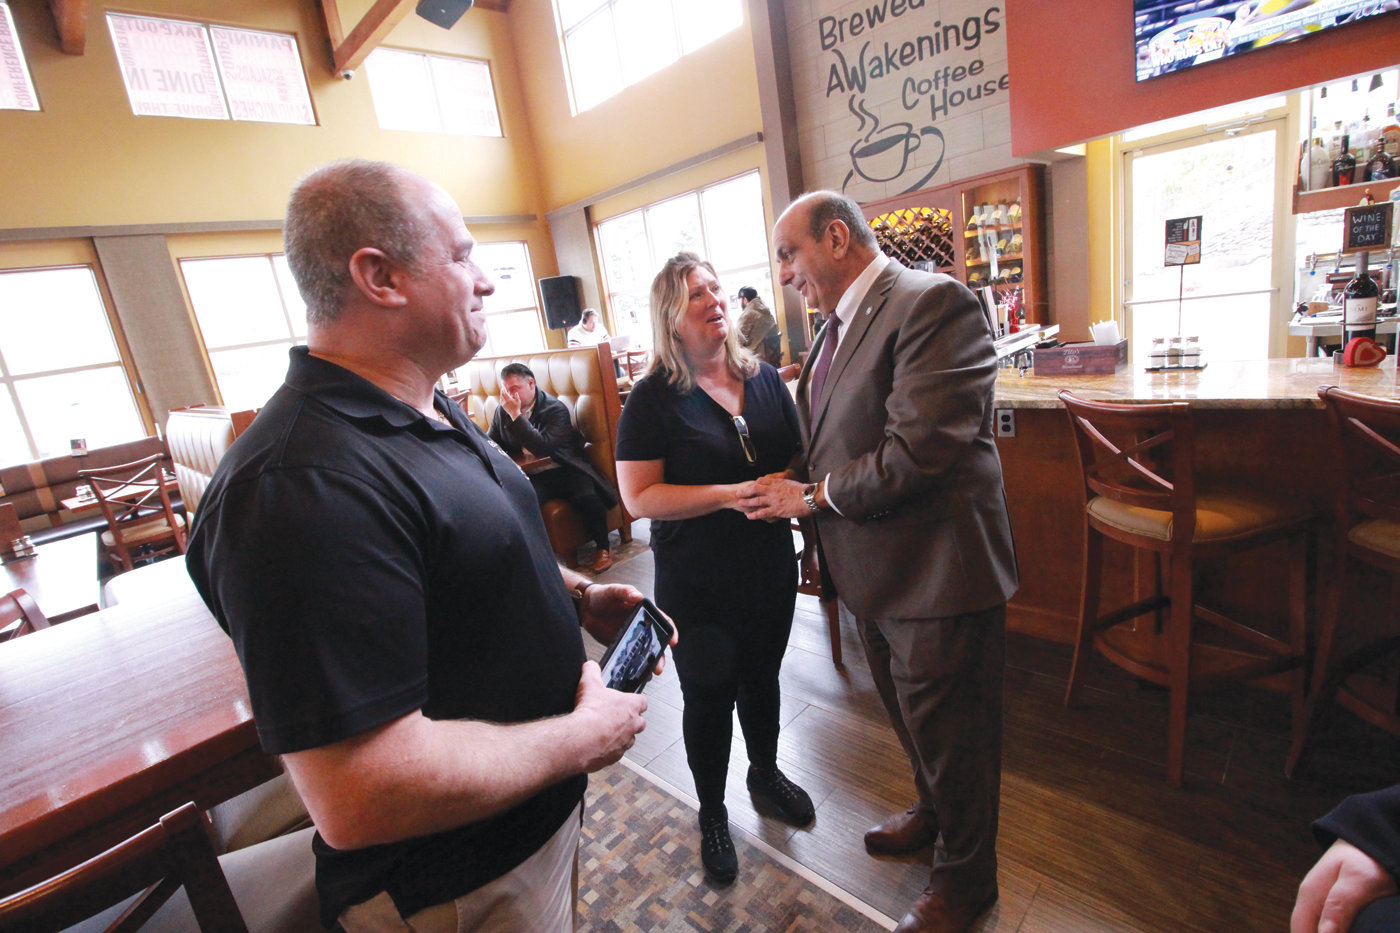 PURSUING HIS VISION: David Levesque, who founded the Rhode Island chair of Brewed Awakenings coffee shops, talks with Warwick Mayor Joseph Solomon on a recent visit to the Bald Hill Road store. David's sister, Karen Dore, who also works at Brewed Awakenings, joins them.